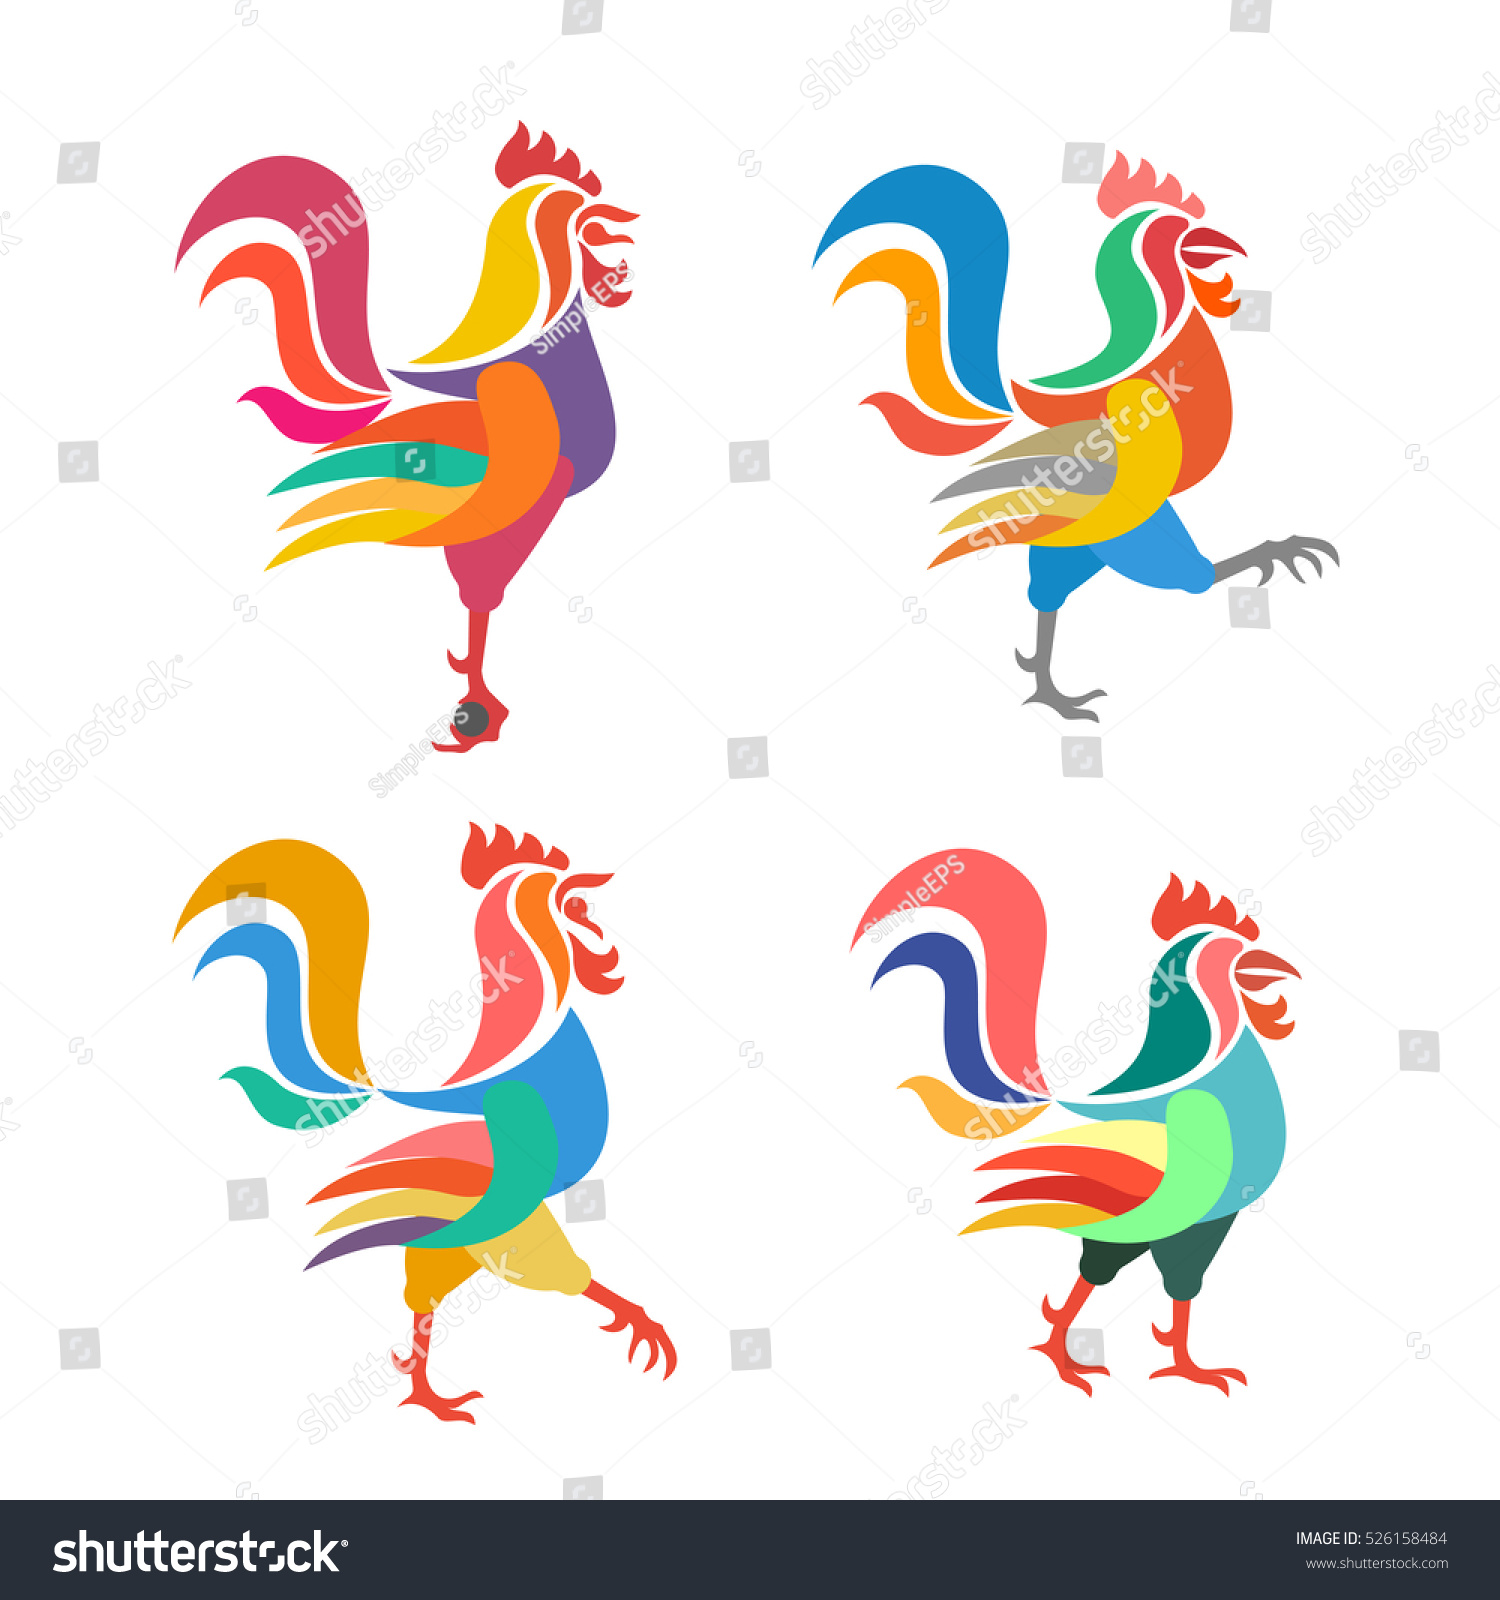 stylized image rooster animal symbol eastern stock vector